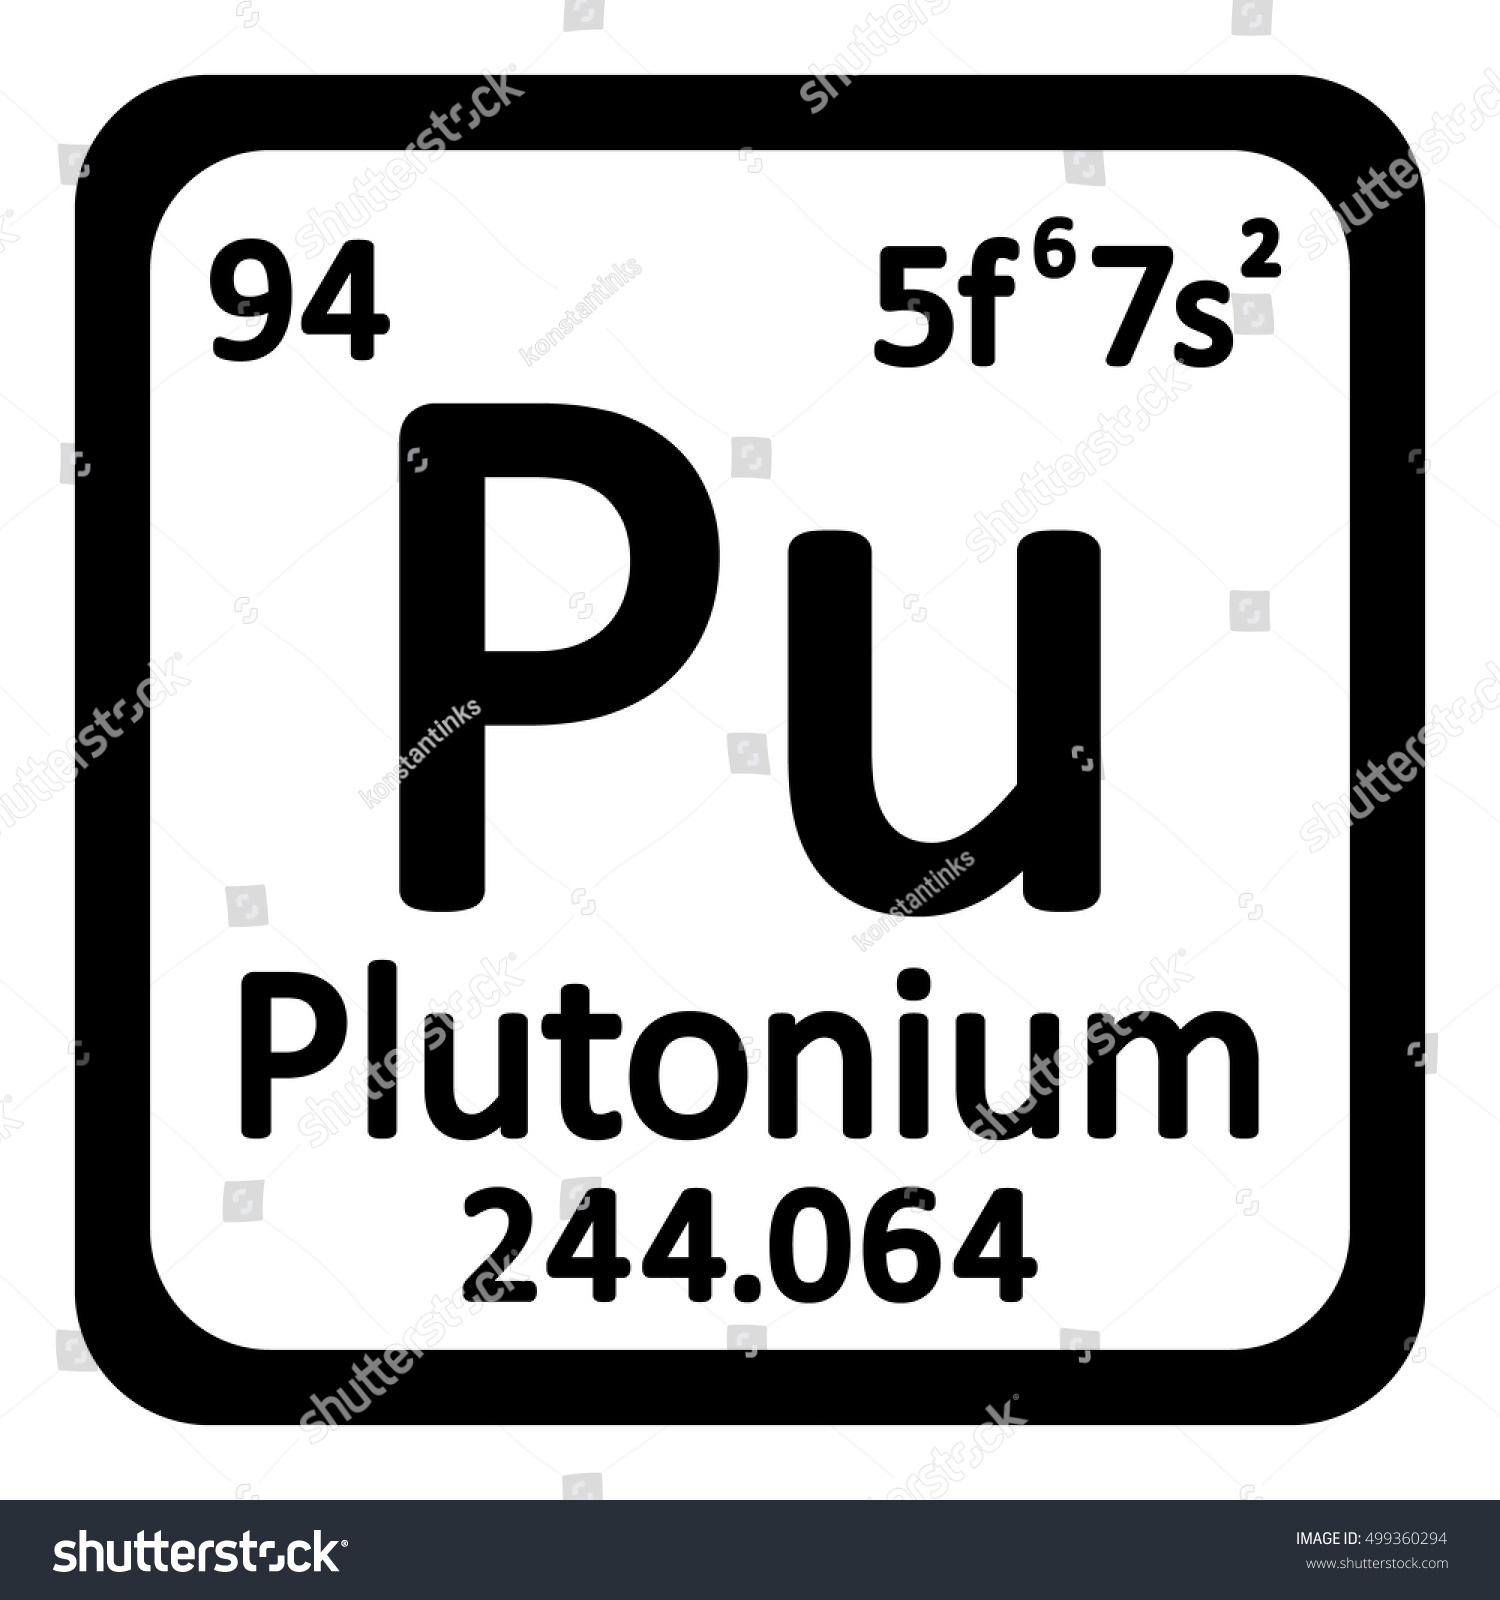 Plutonium on periodic table image collections periodic table images plutonium on periodic table choice image periodic table images plutonium on periodic table gallery periodic table gamestrikefo Image collections